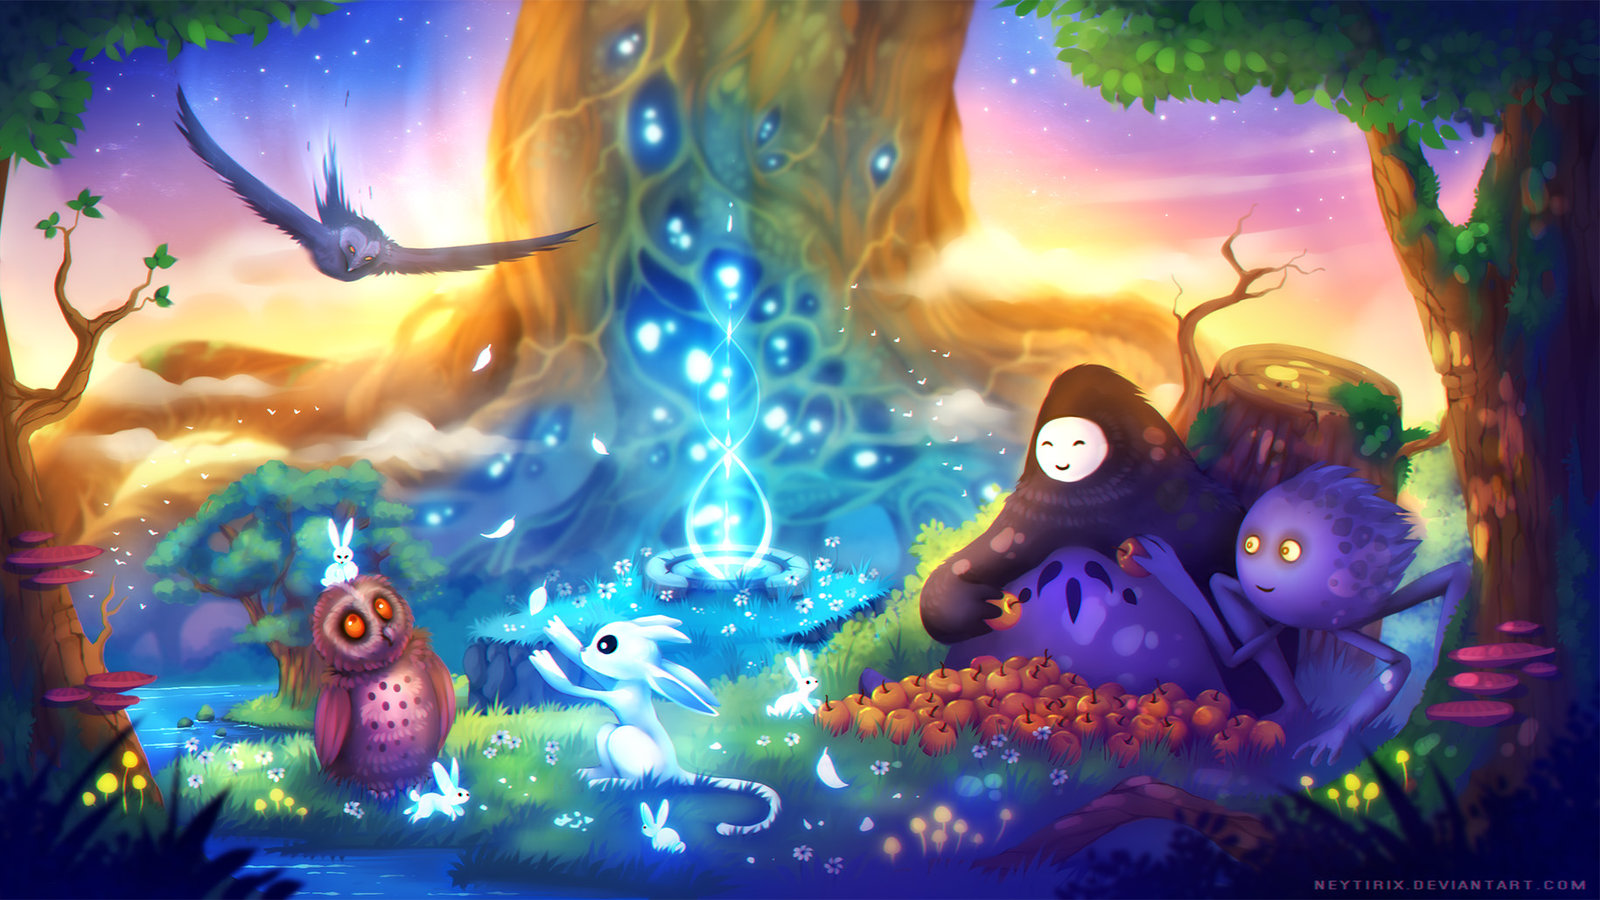 Ori and the Blind Forest by Neytirix on DeviantArt